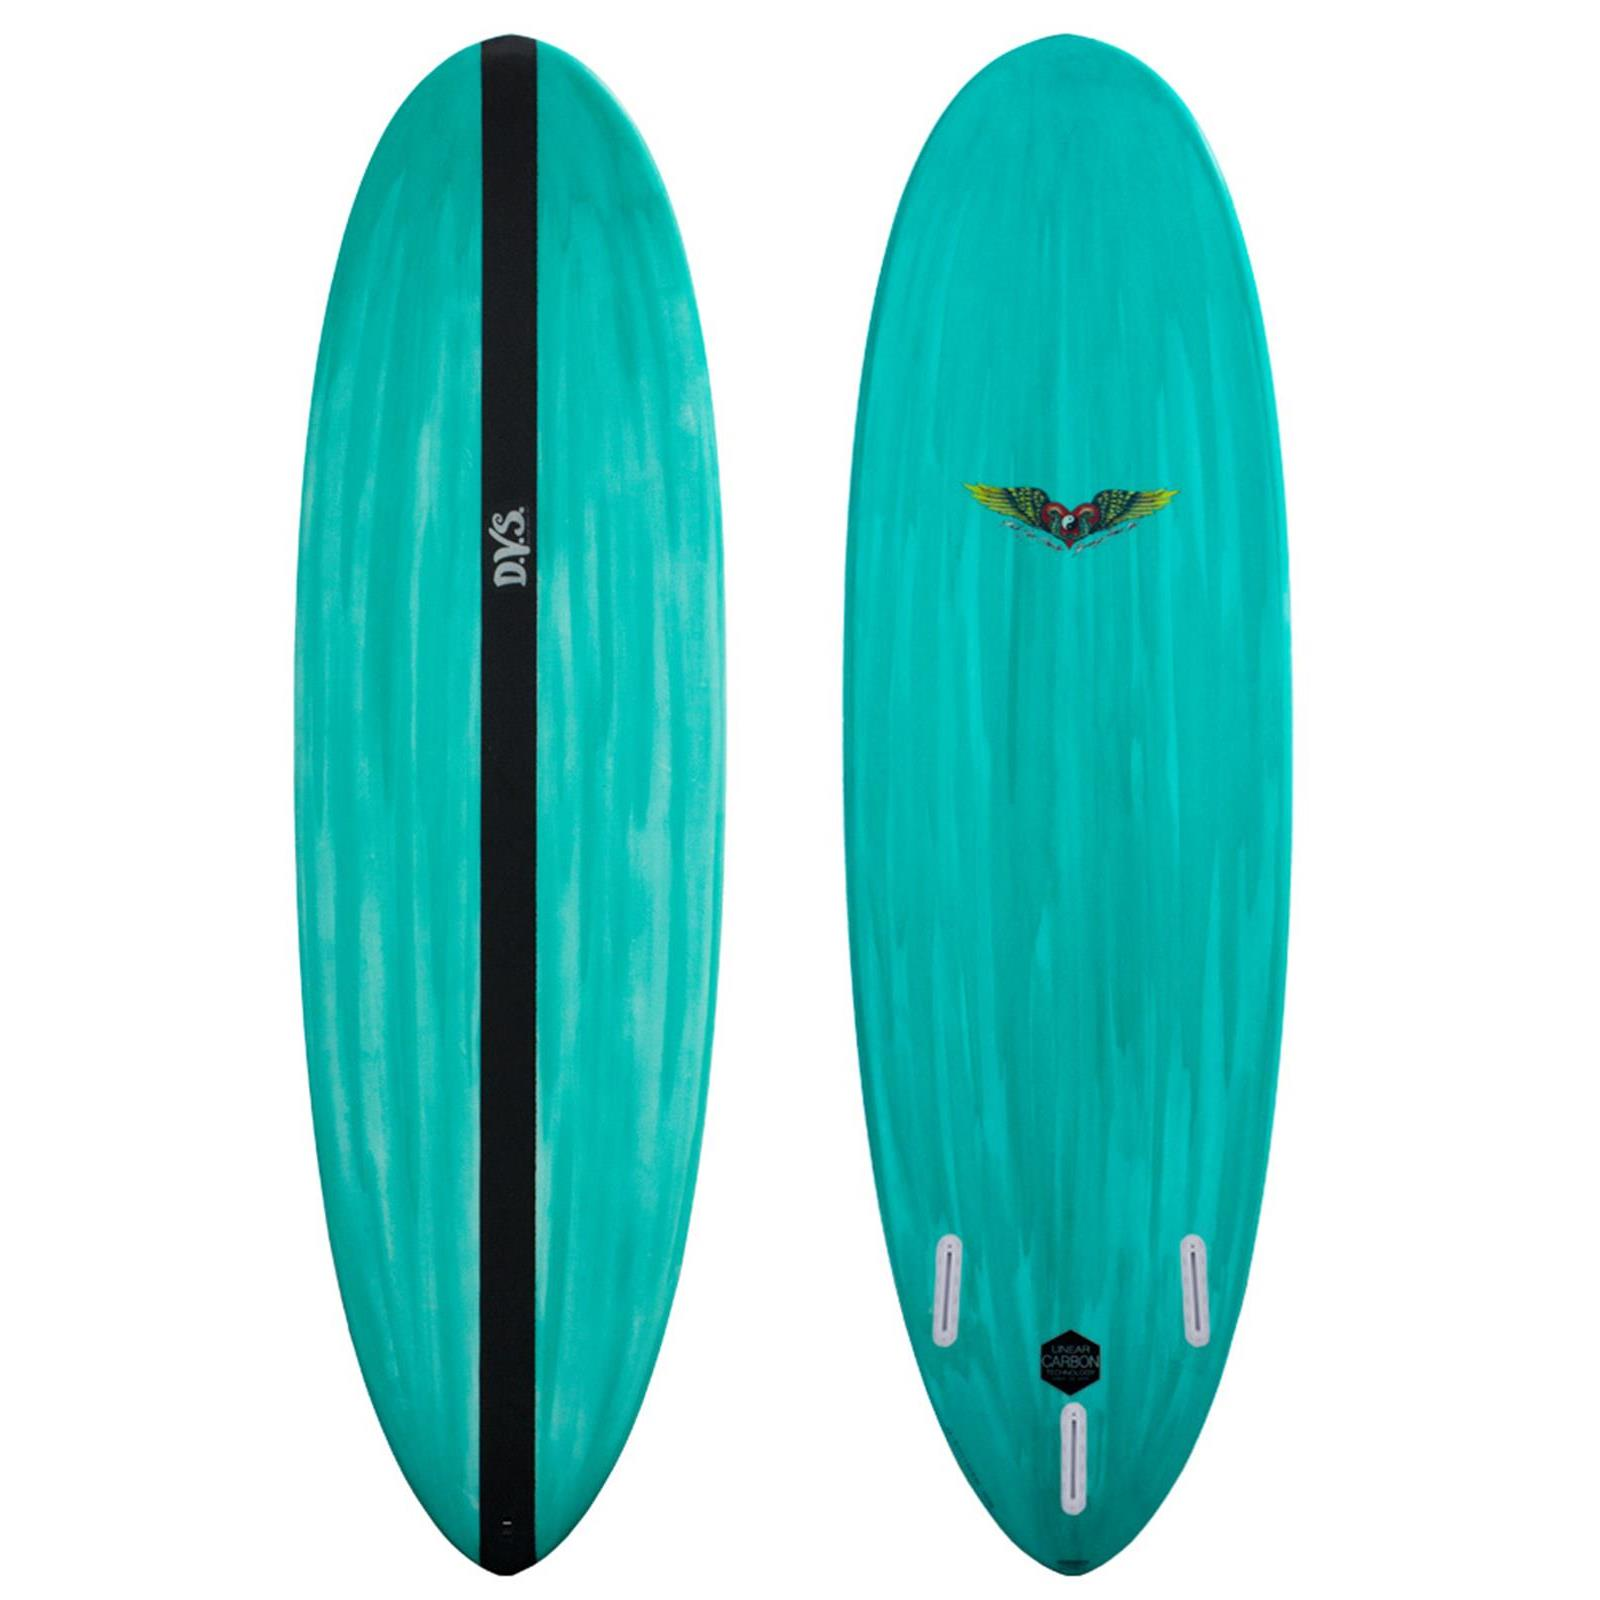 Surfboard DVS - Micro 5.8 LCT Futures